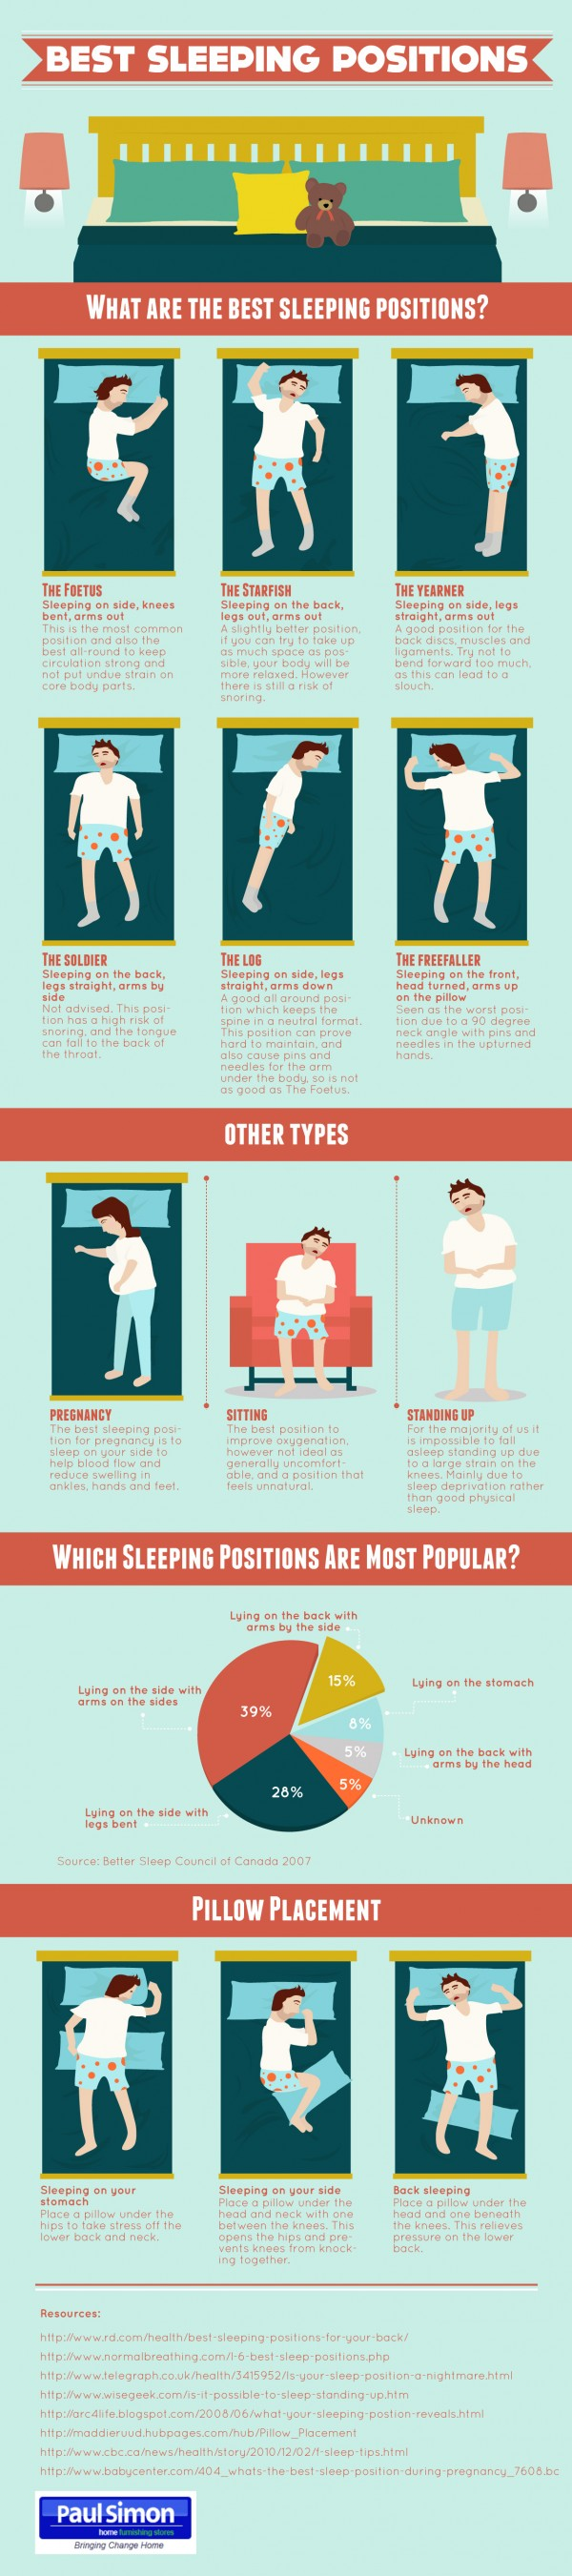 Best Sleeping Positions #infographic